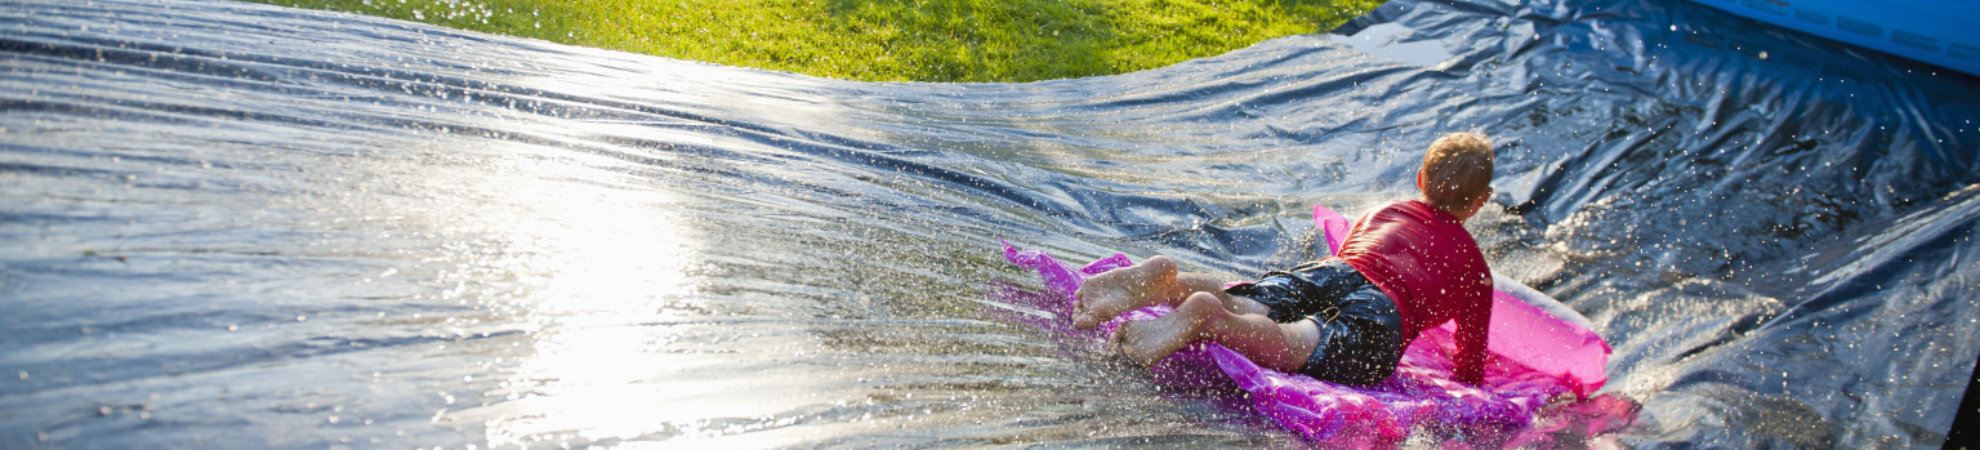 back garden activities -SLIP-N-SLIDE